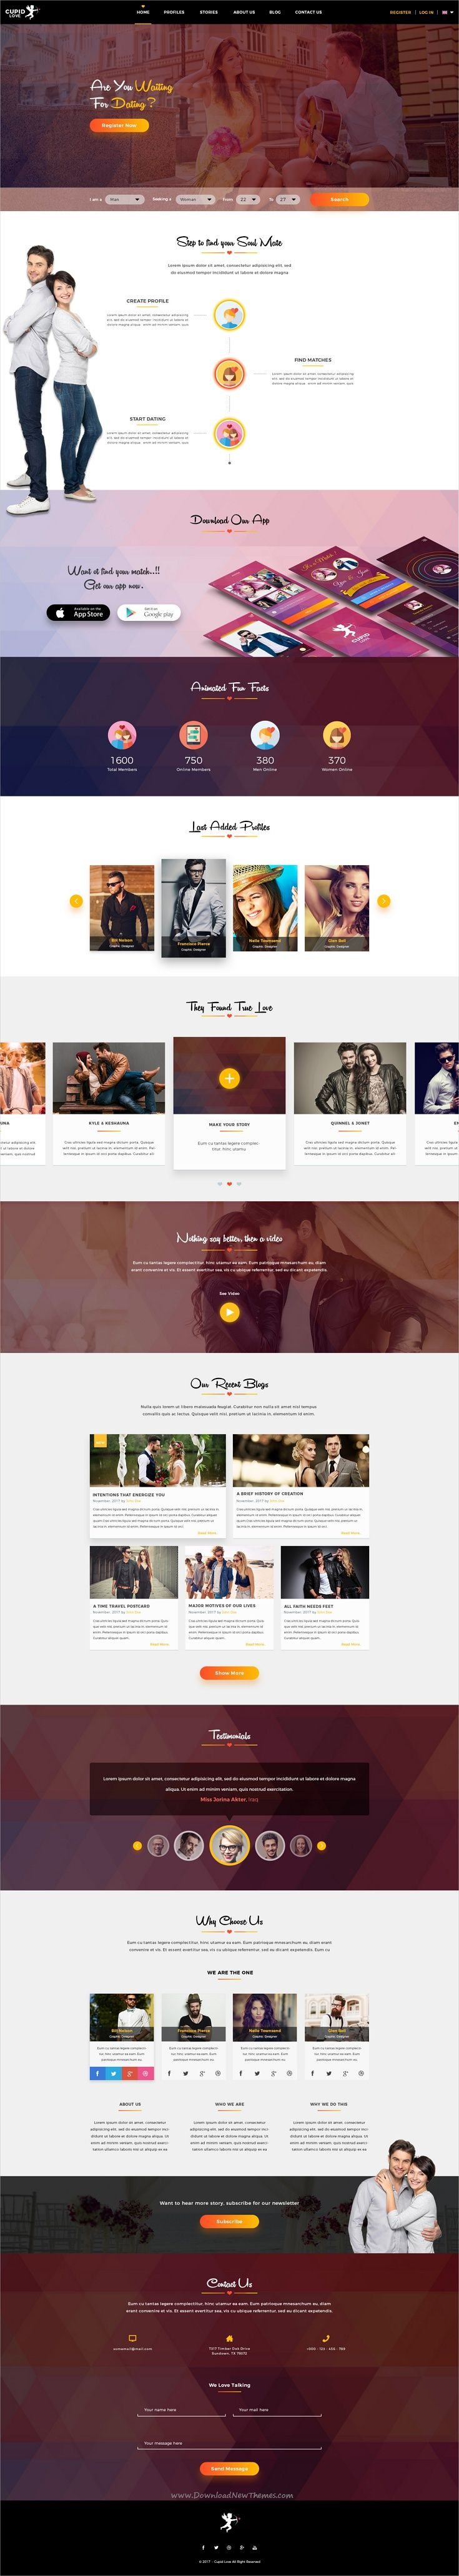 Cupid love is a magnificent #PSD template for #webdev modern #dating website with 16 organized PSD fiels download now➩ https://themeforest.net/item/cupid-love-dating-website-psd-template/19618805?ref=Datasata